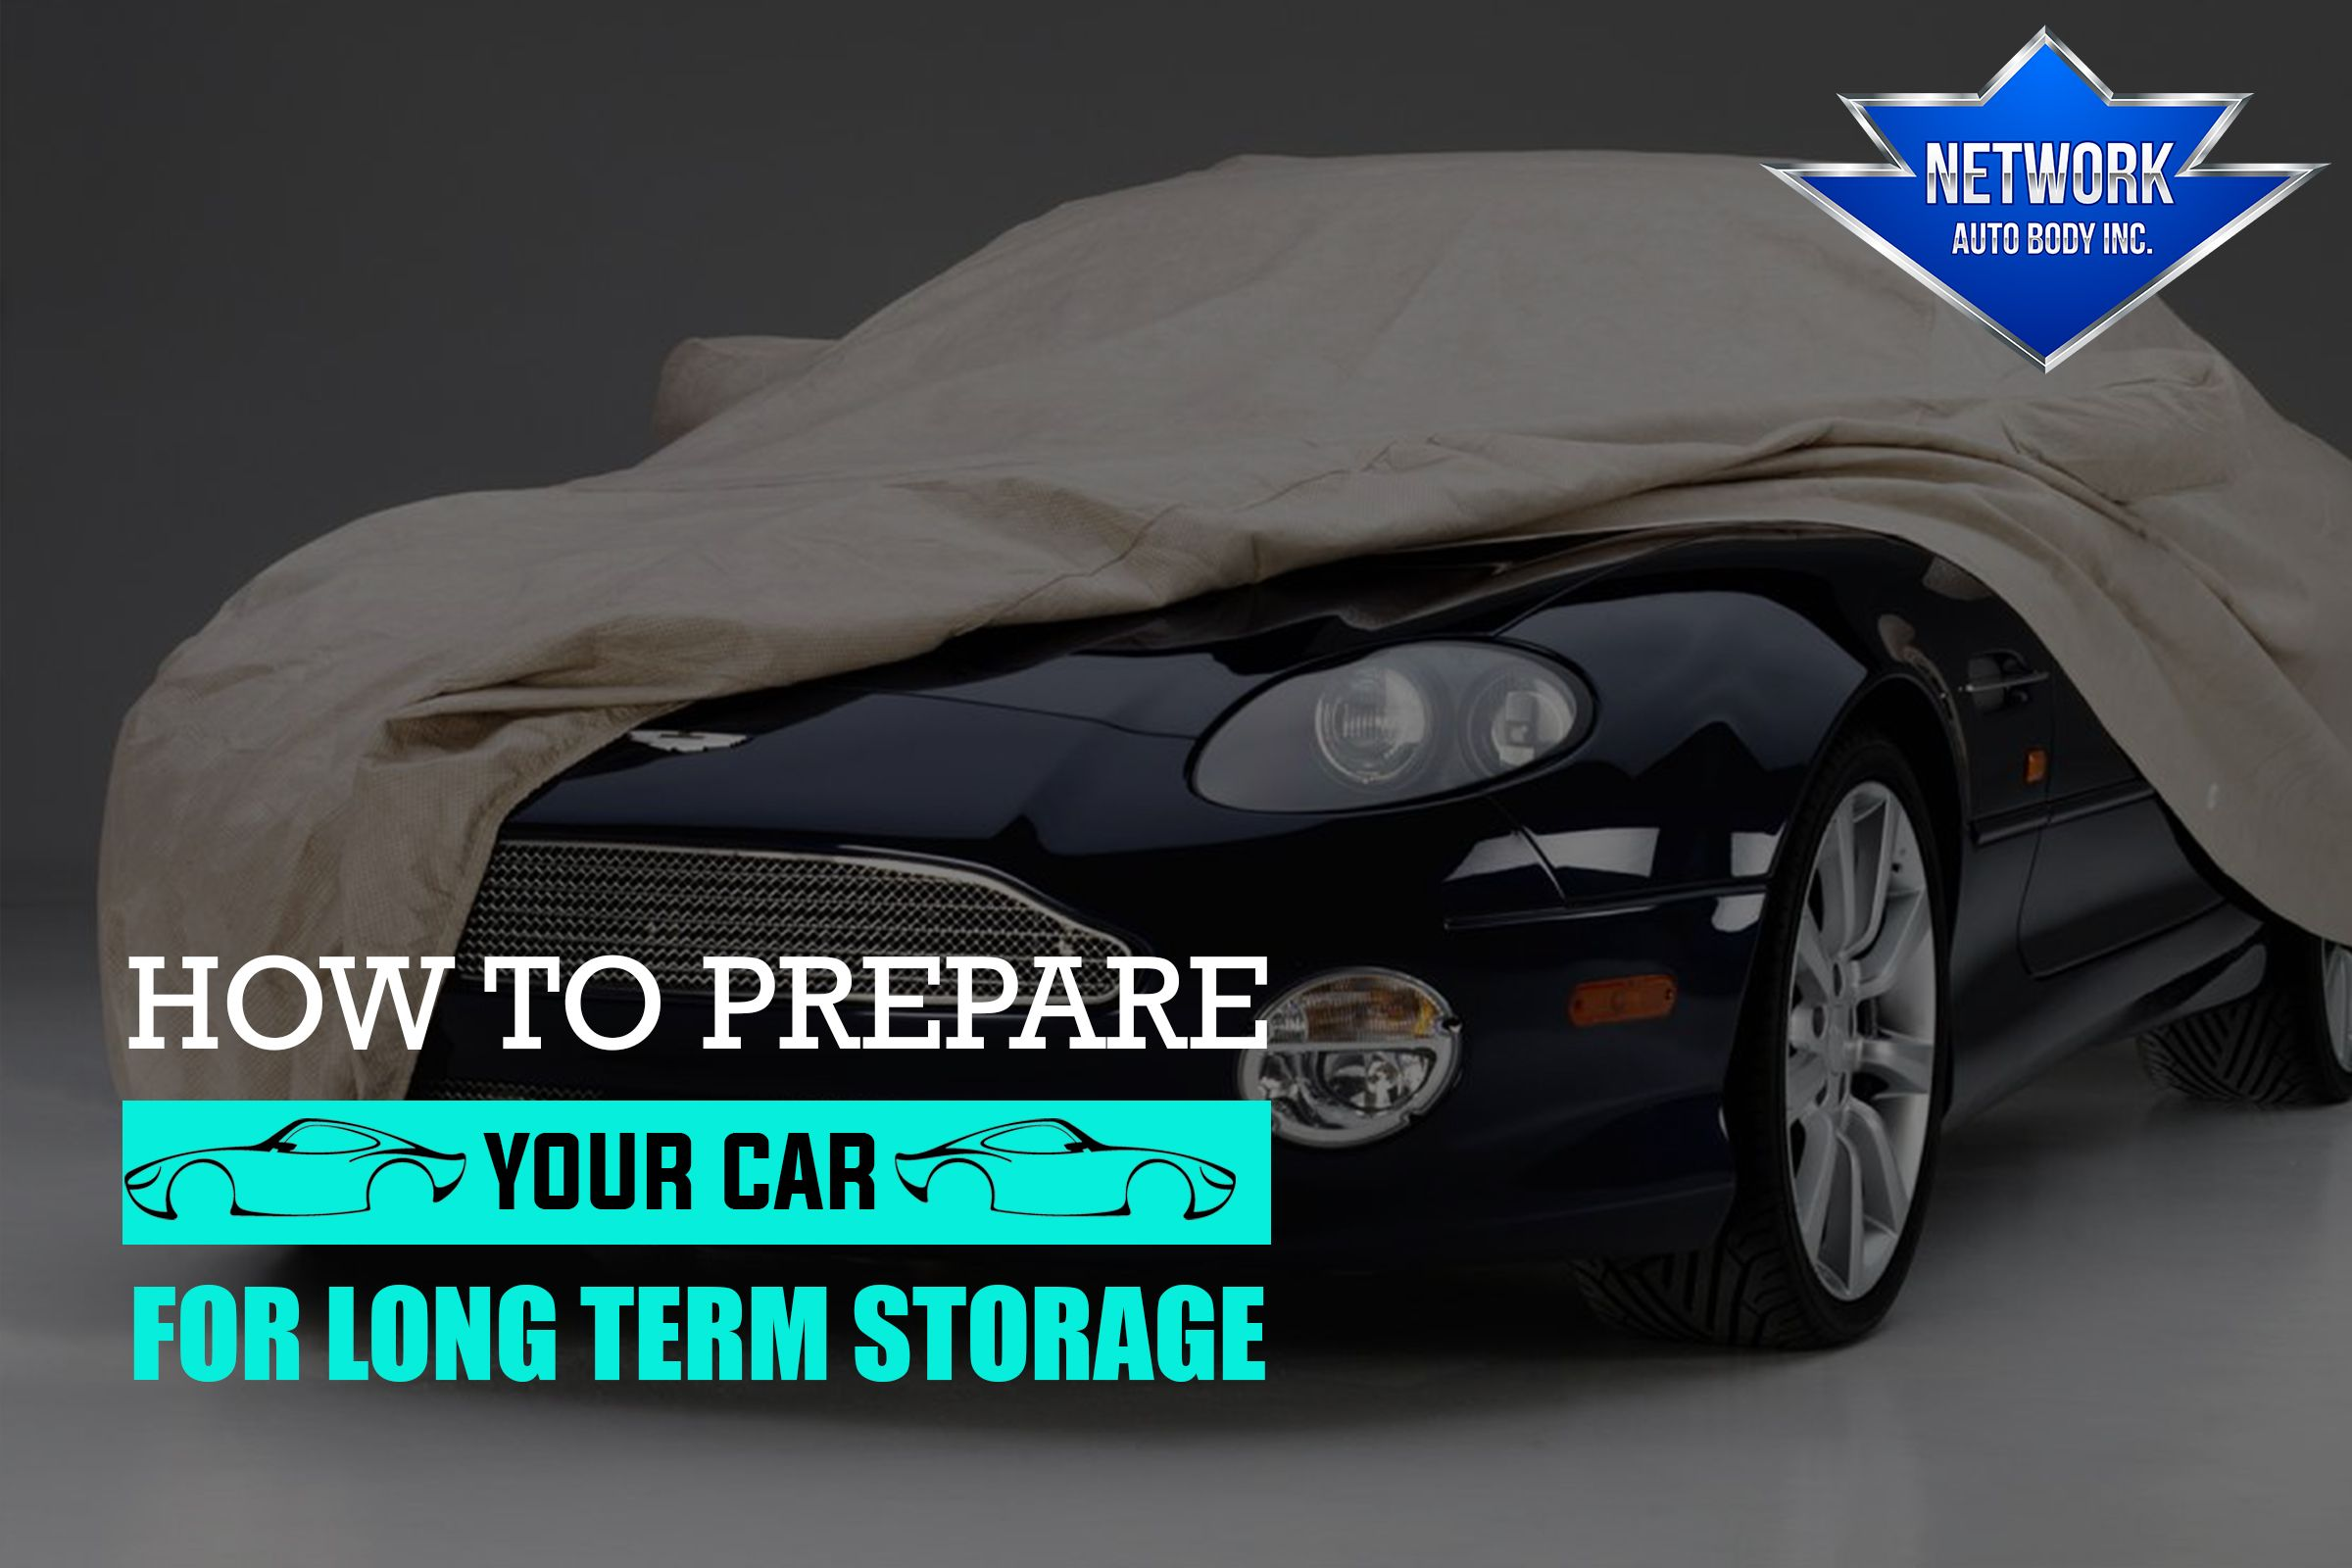 Planning on putting your car in storage? Check out our blog on preparing your car for long term storage! #Trust #NetworkAutoBody #Luxury #Love #Your #Vehicle #Auto #AutoBody #LA #New #Paint #Car #PicOfTheDay #Amazing #Wheels #Rims #Repairs #Transformation #Makeover #Vehicles #SportsCar #Hot #Ride #California #Cars #Of #LosAngeles #LuxuryCars #Storage #CarStorage